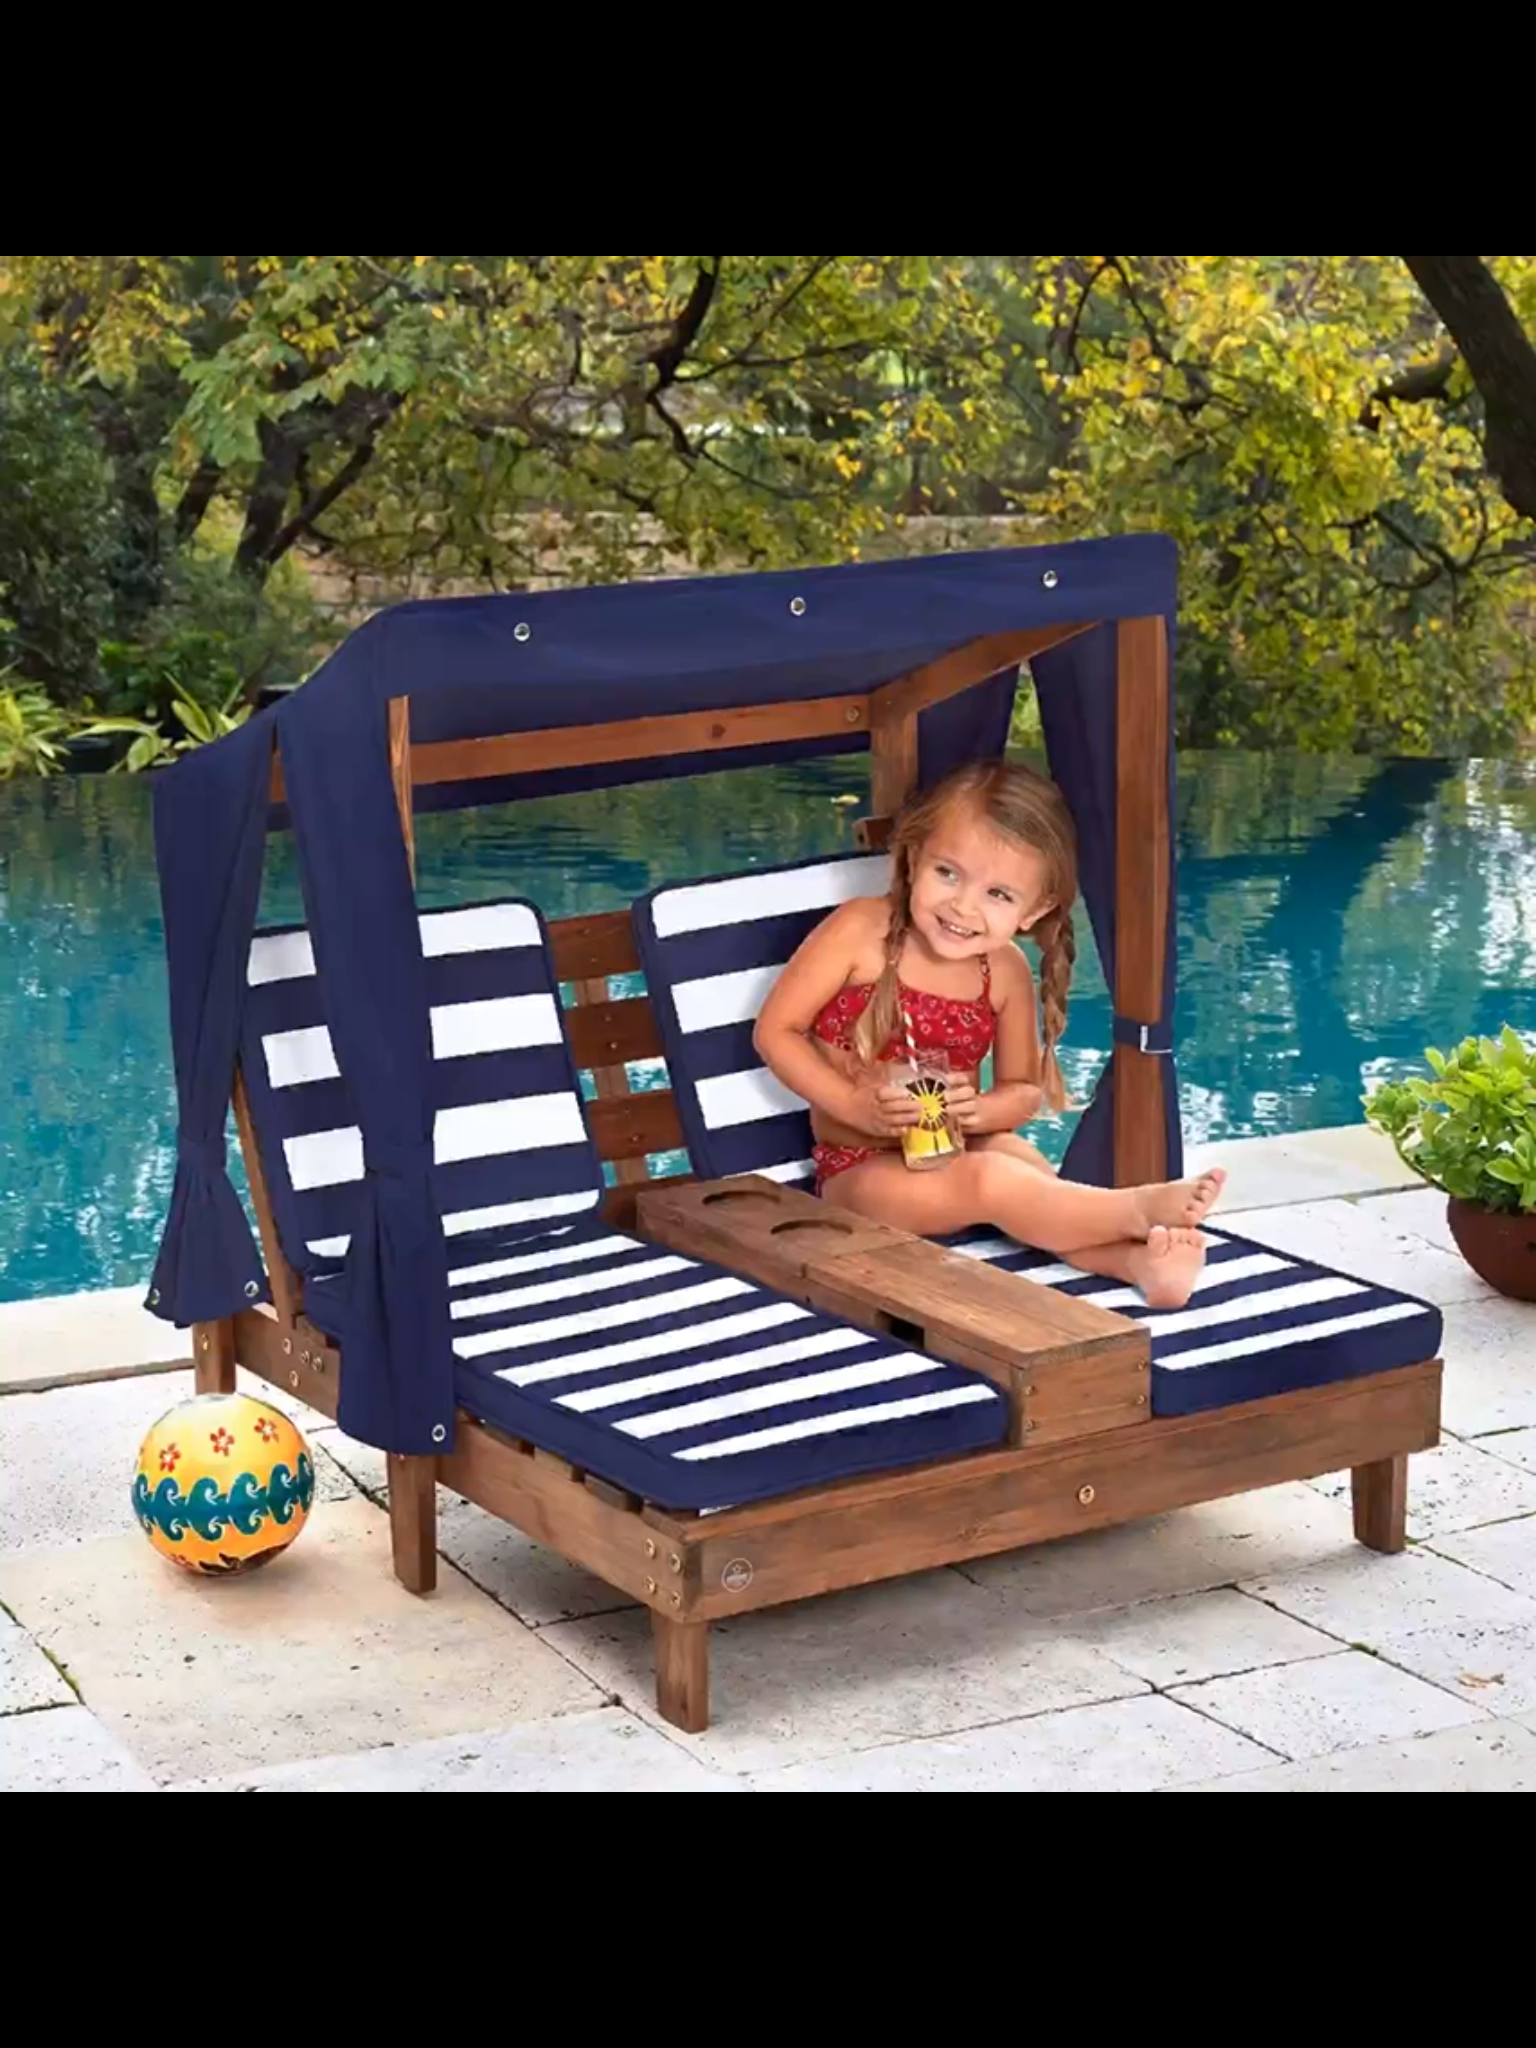 Pin By Zada Brewer On Babies Toddlers Double Chaise Lounge